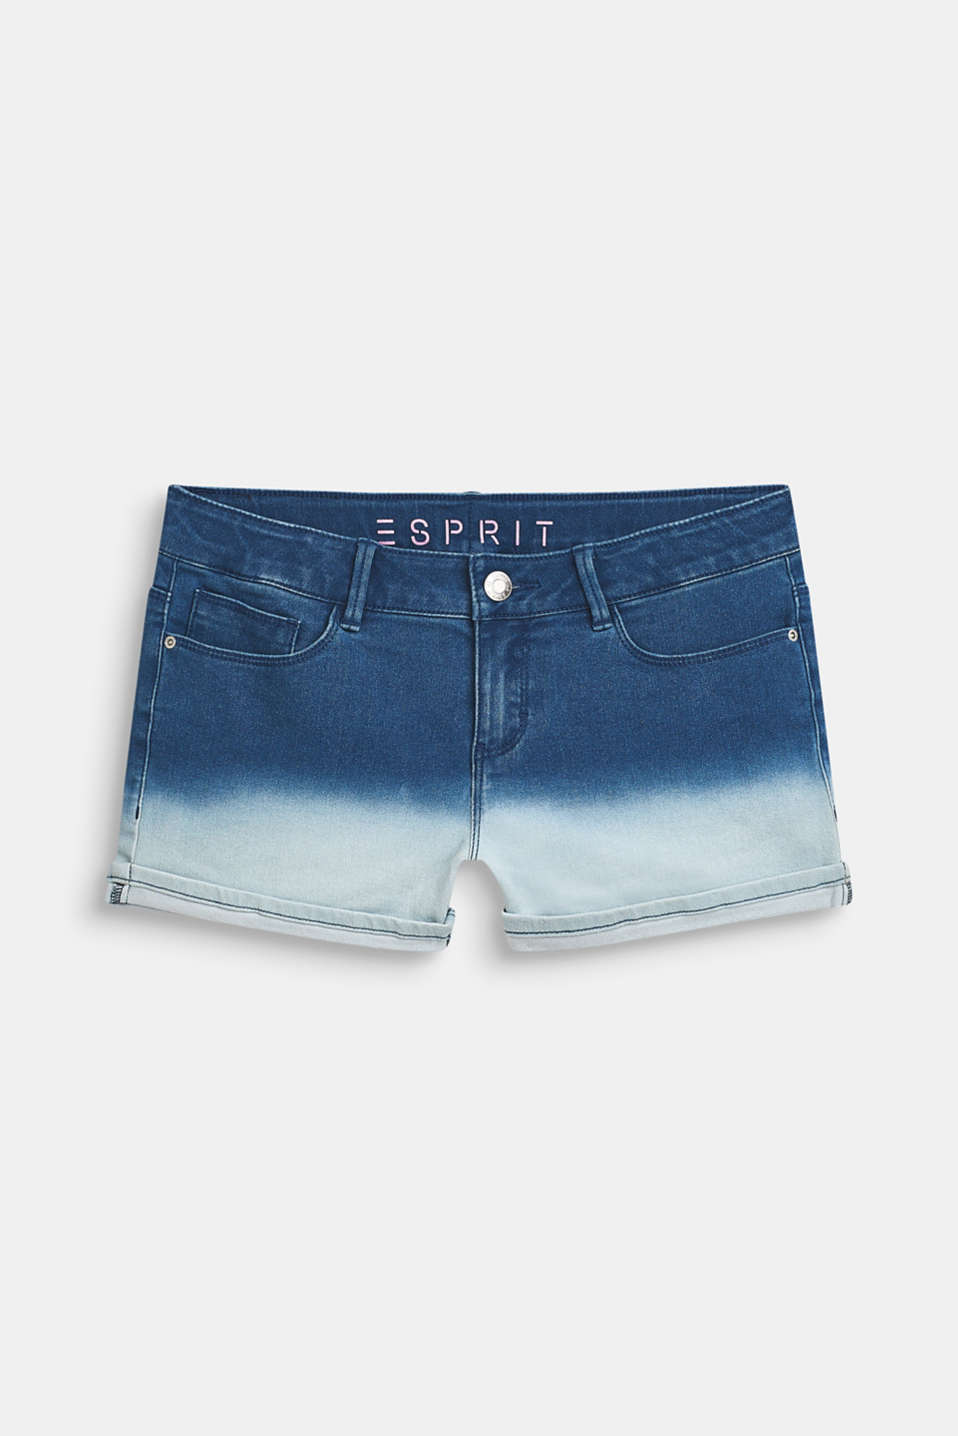 Esprit - Gebatikte short van joggingstof met stretch